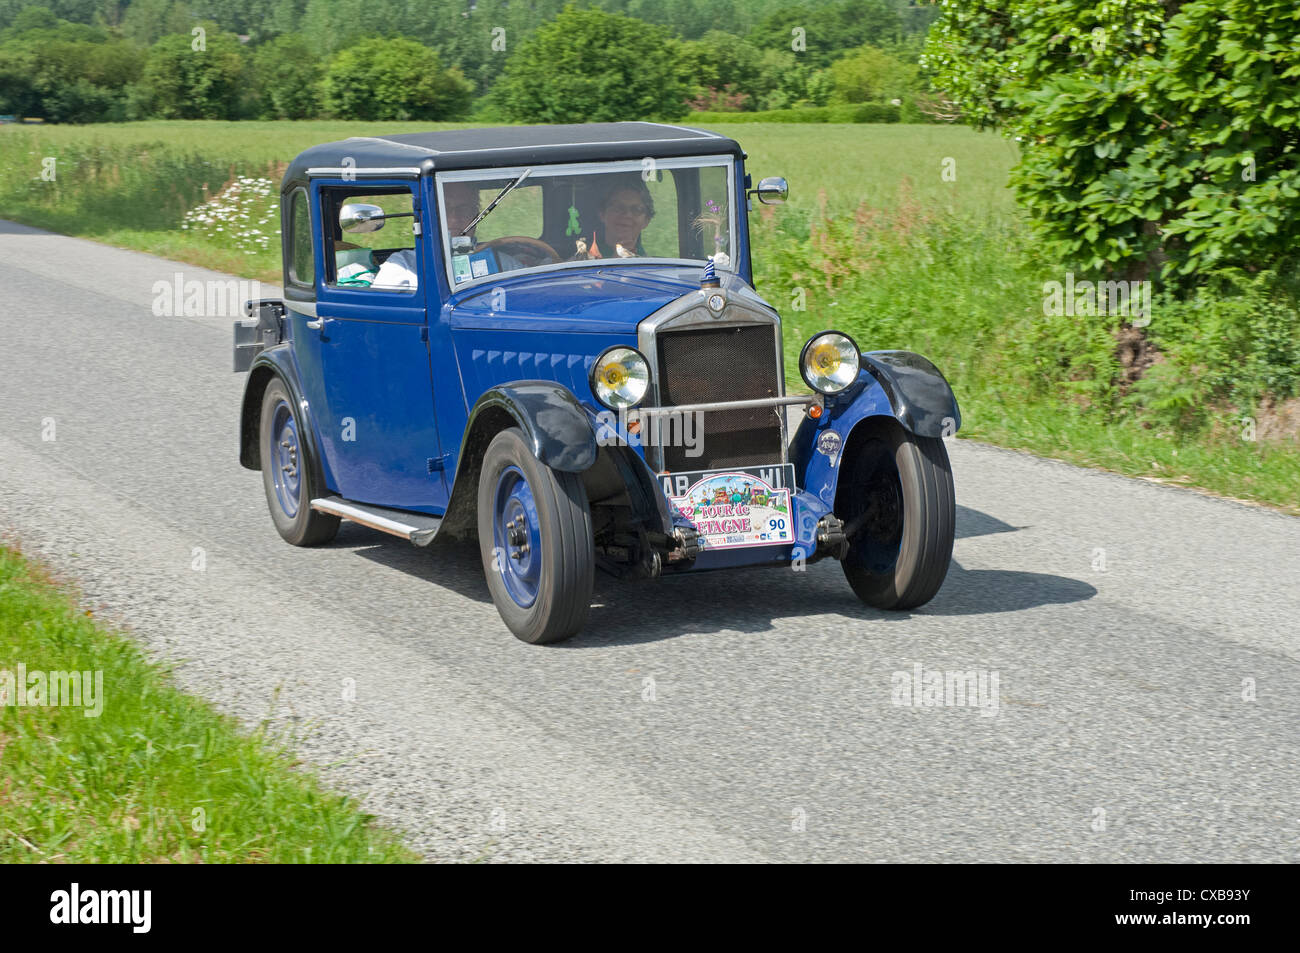 Mathis TY Coupe of 1933 in the Tour de Bretagne, France, 2012 - Stock Image